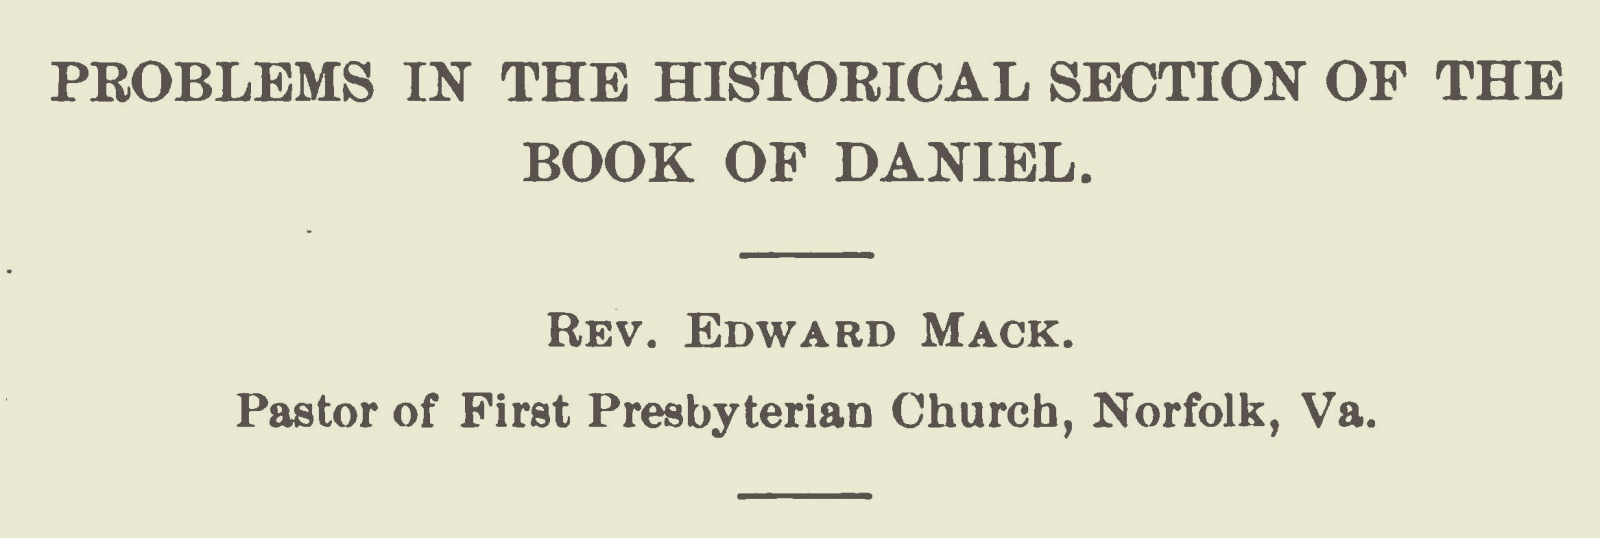 Mack, Sr., Edward, Problems in the Historical Section of the Book of Daniel Title Page.jpg